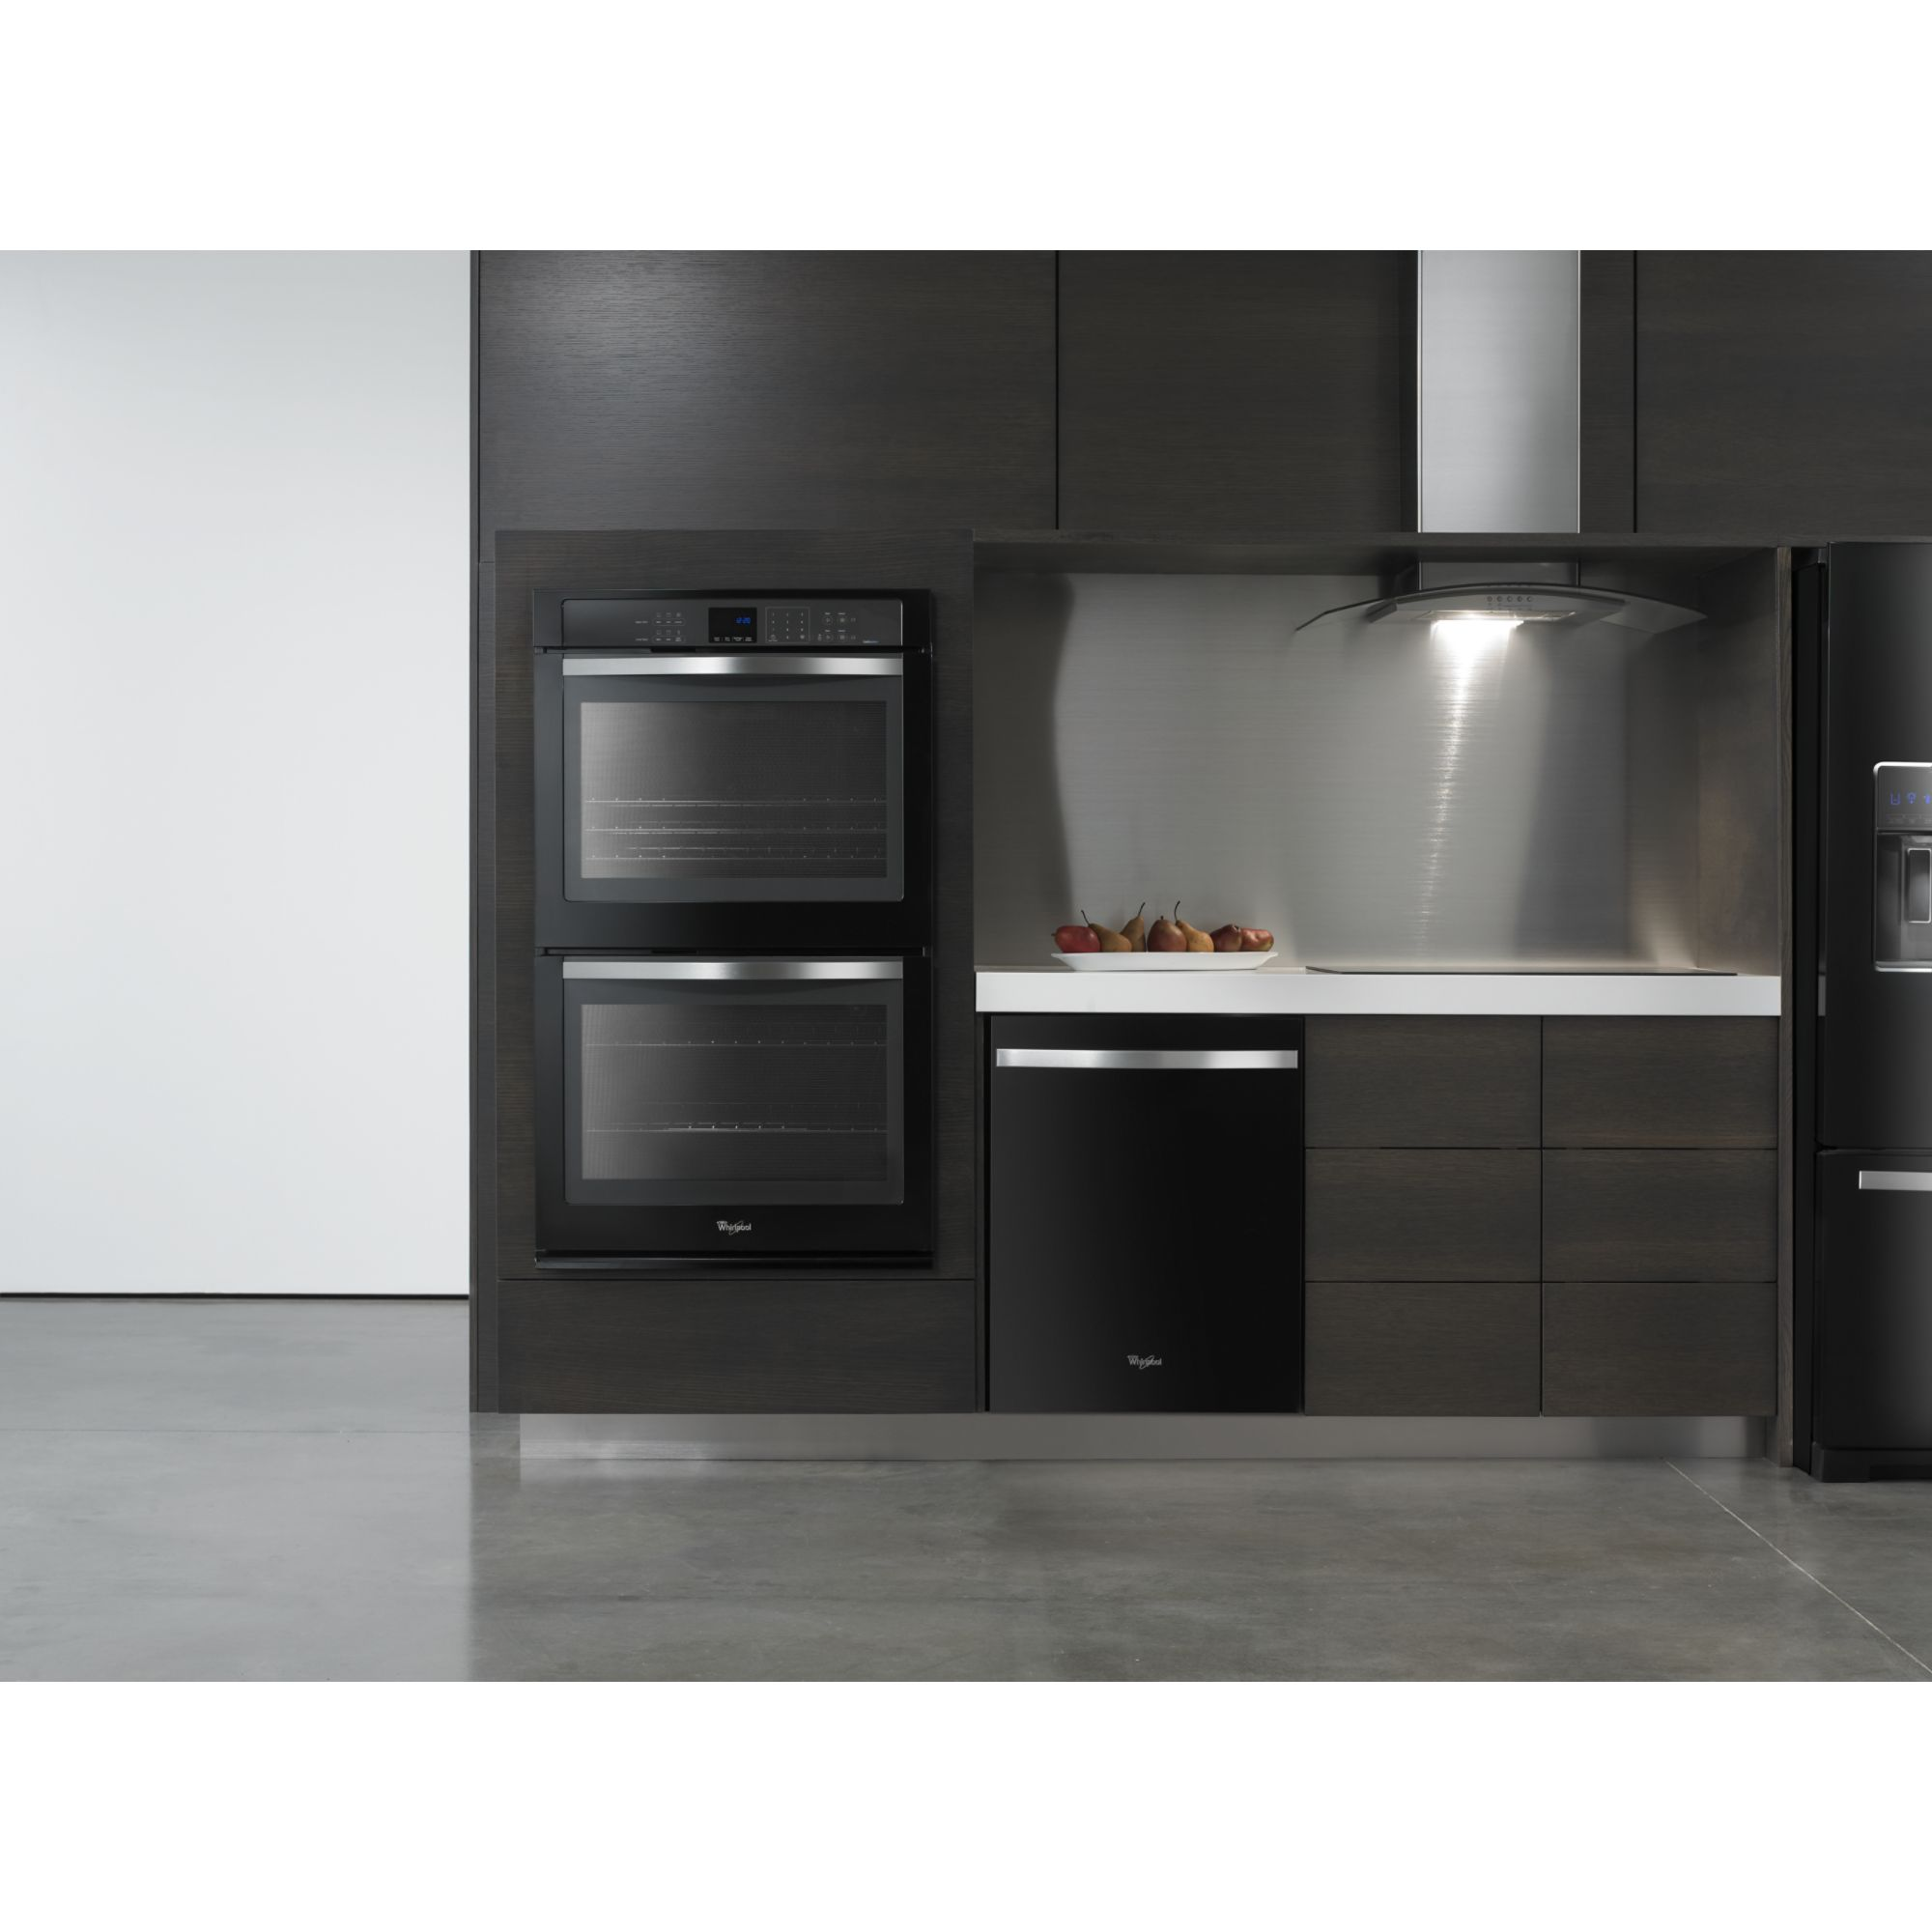 "Whirlpool Gold WOD93EC0AE 30"" Electric Double Wall Oven w/ TimeSavor™ Ultra True Convection - Black Ice"